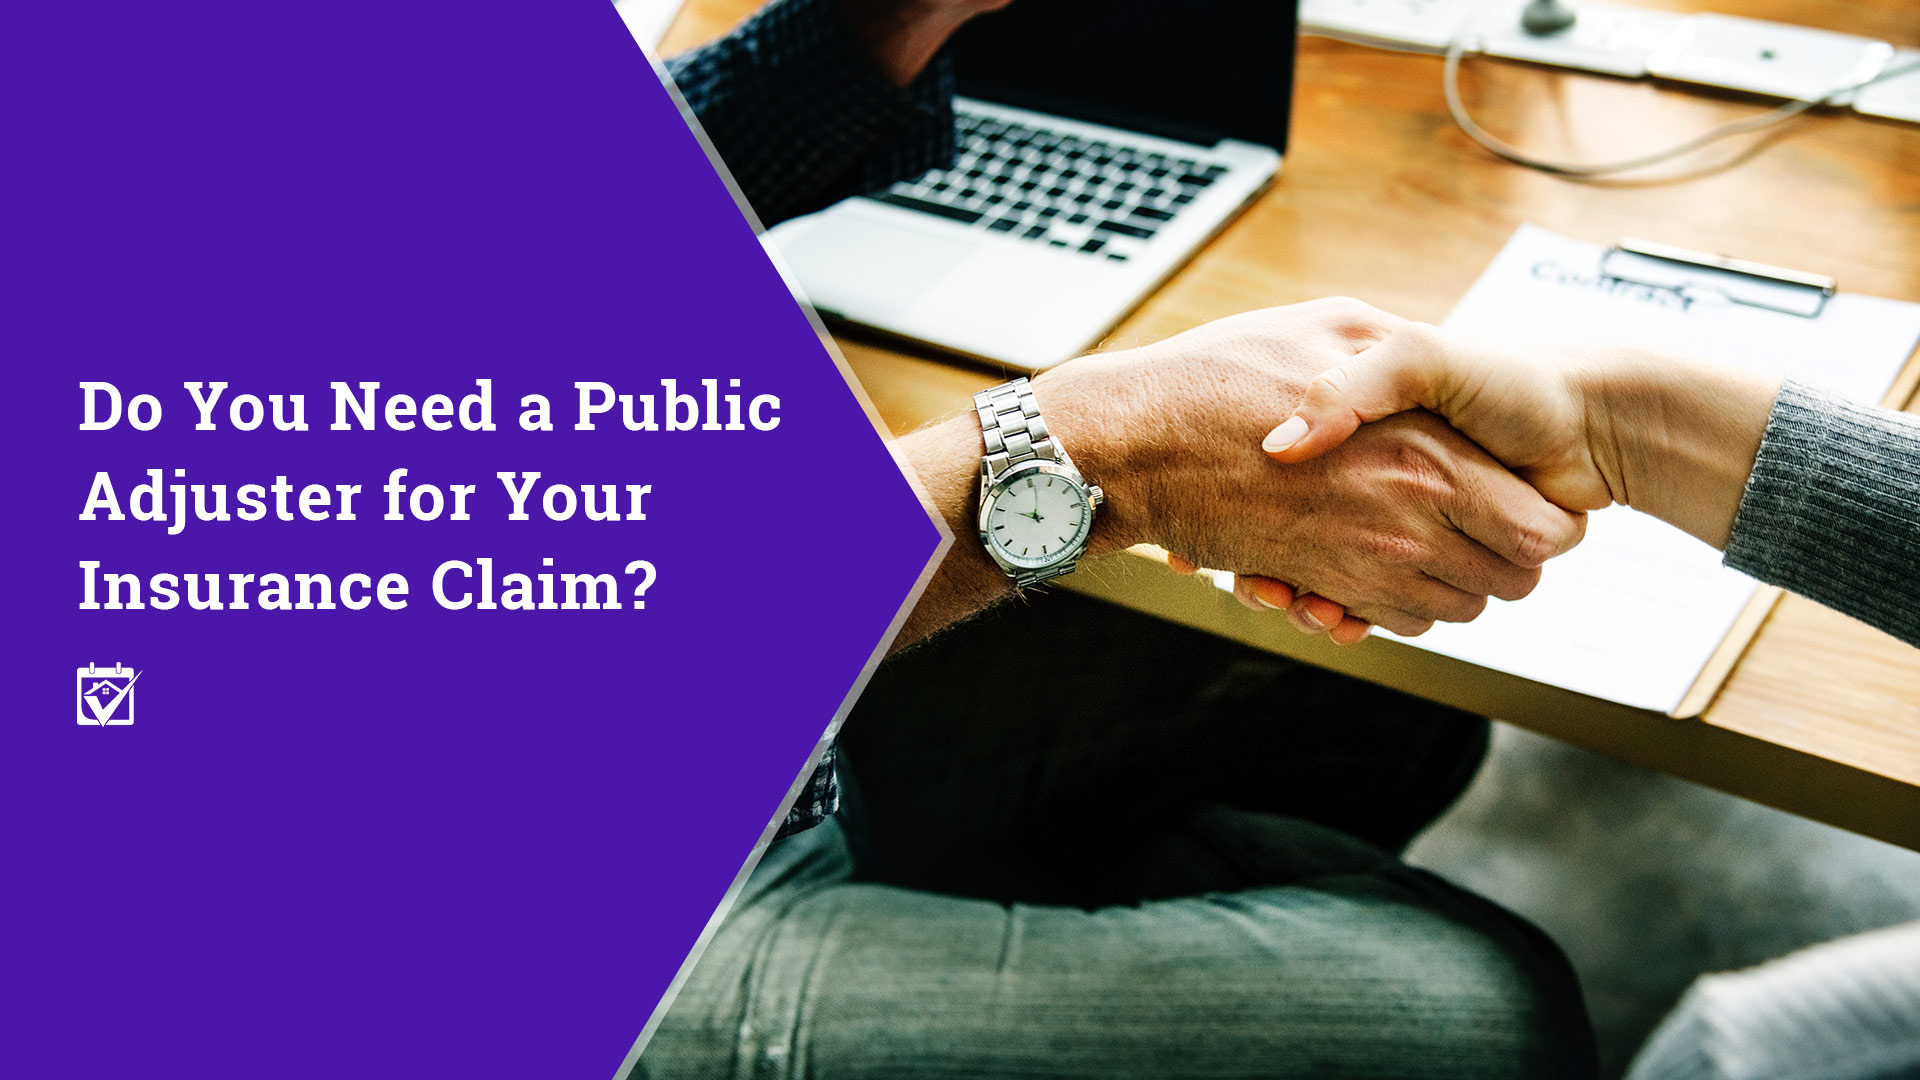 Do You Need a Public Adjuster for Your Insurance Claim?